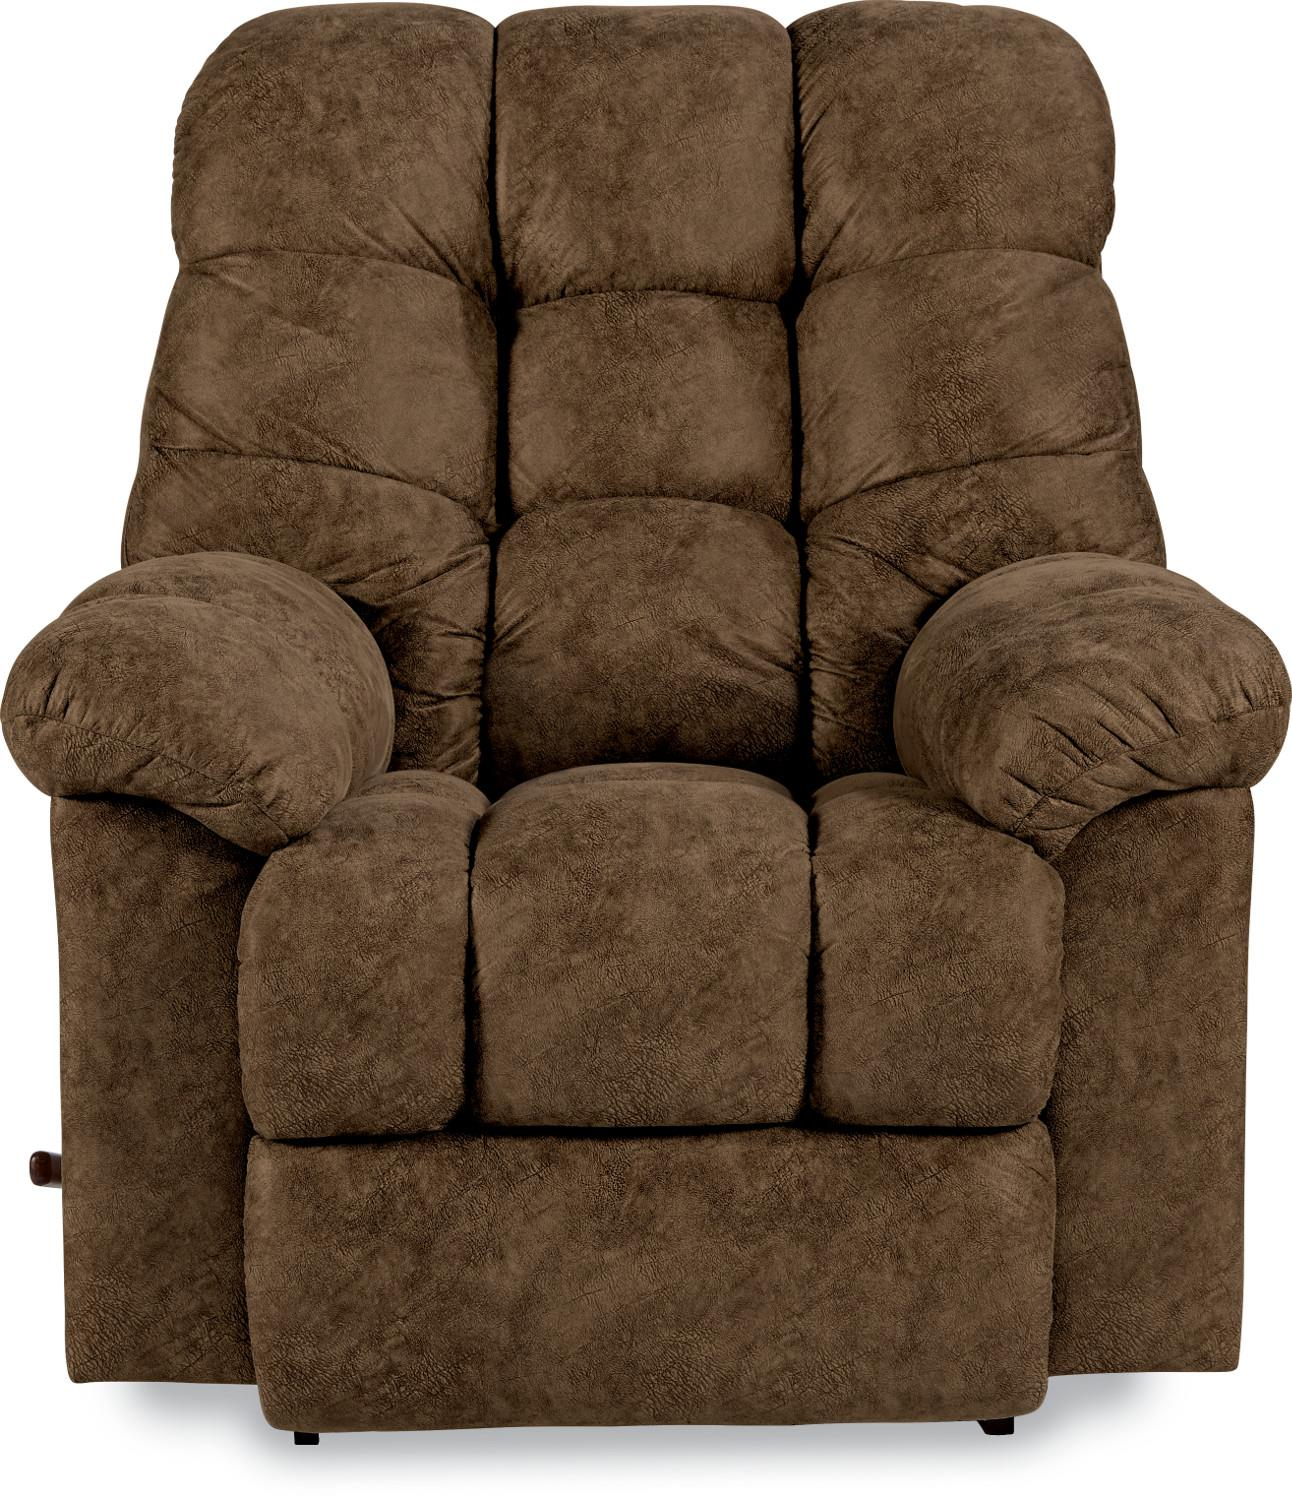 Gibson Rocking Recliner by La-Z-Boy at SuperStore